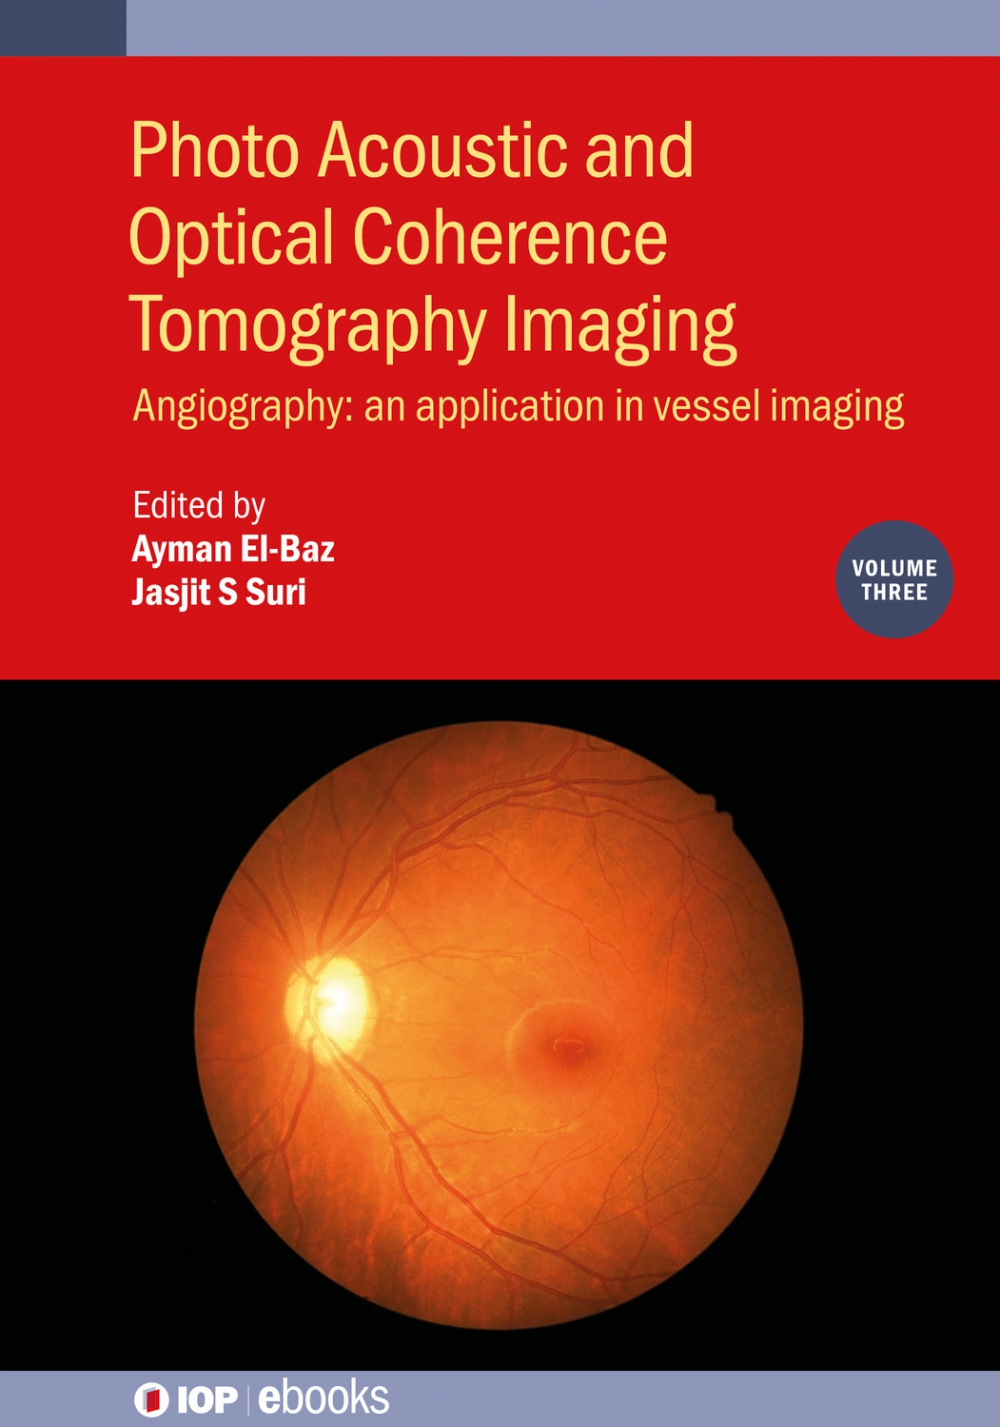 Jacket image for Photo Acoustic and Optical Coherence Tomography Imaging, Volume 3